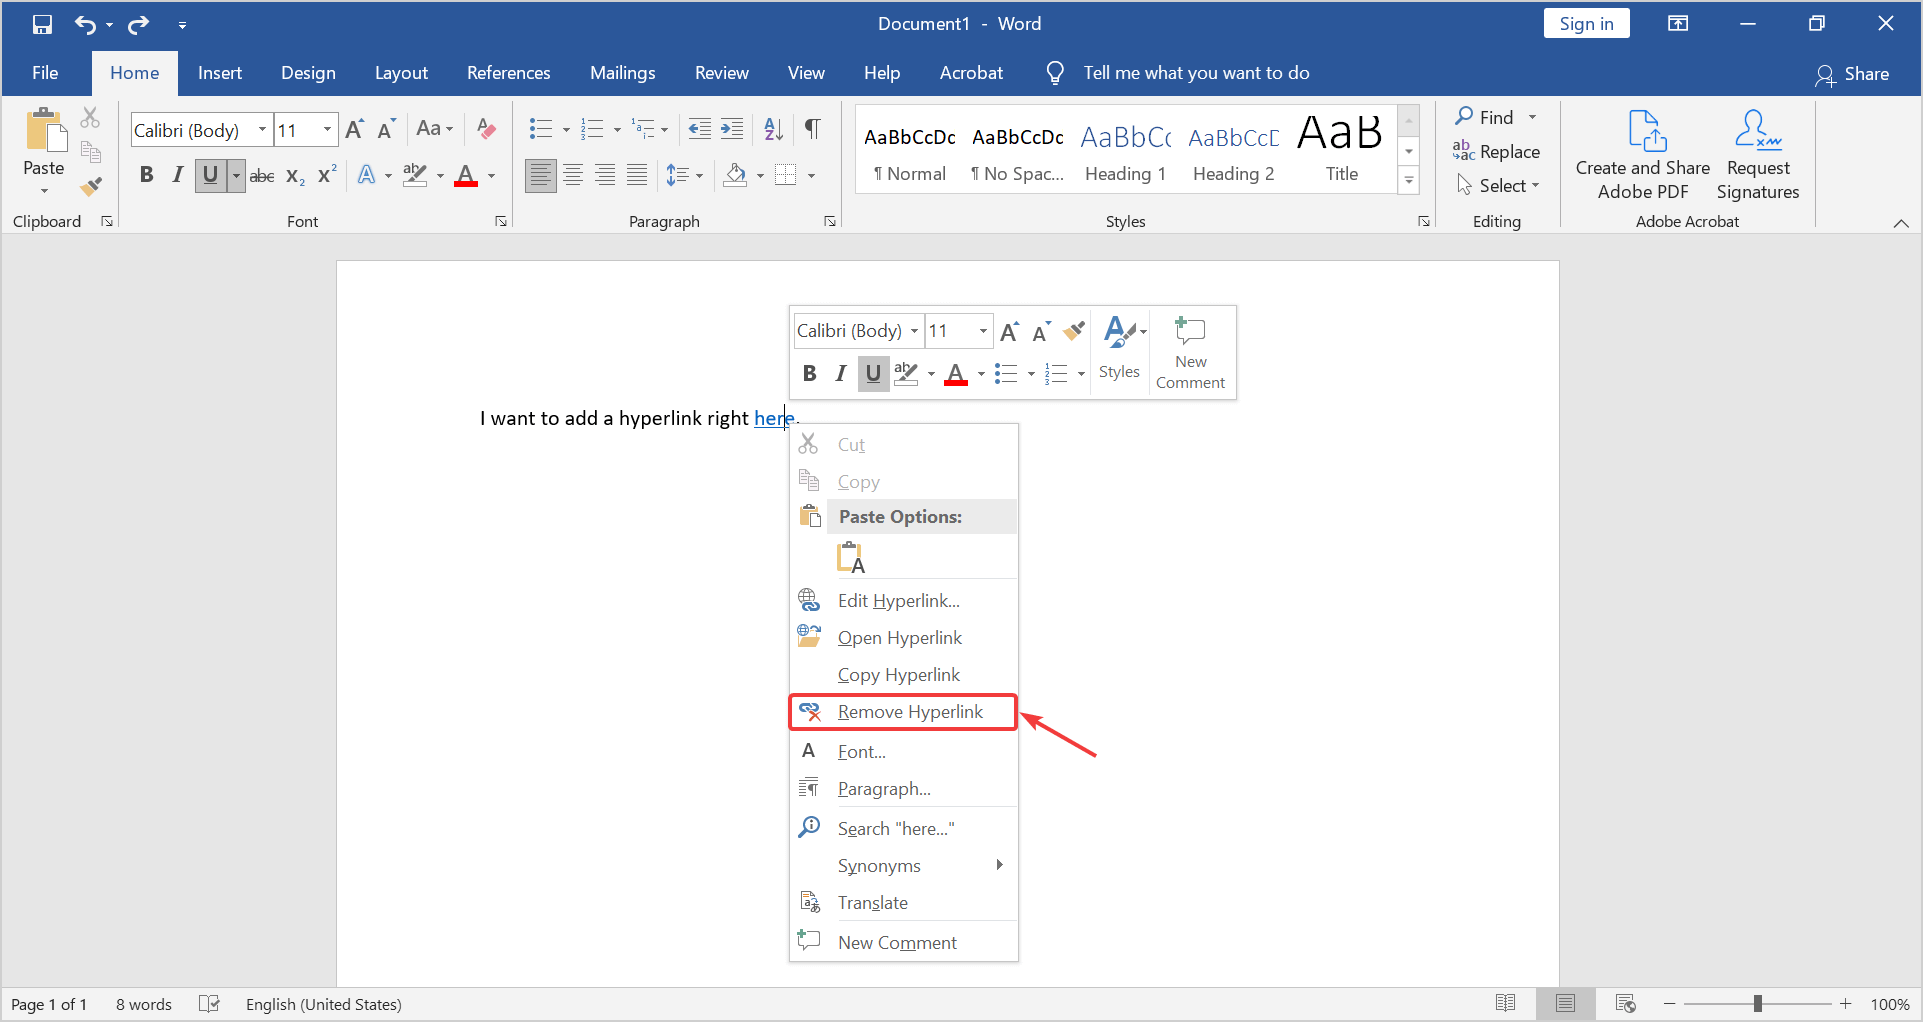 how to remove a hyperlink in a word document